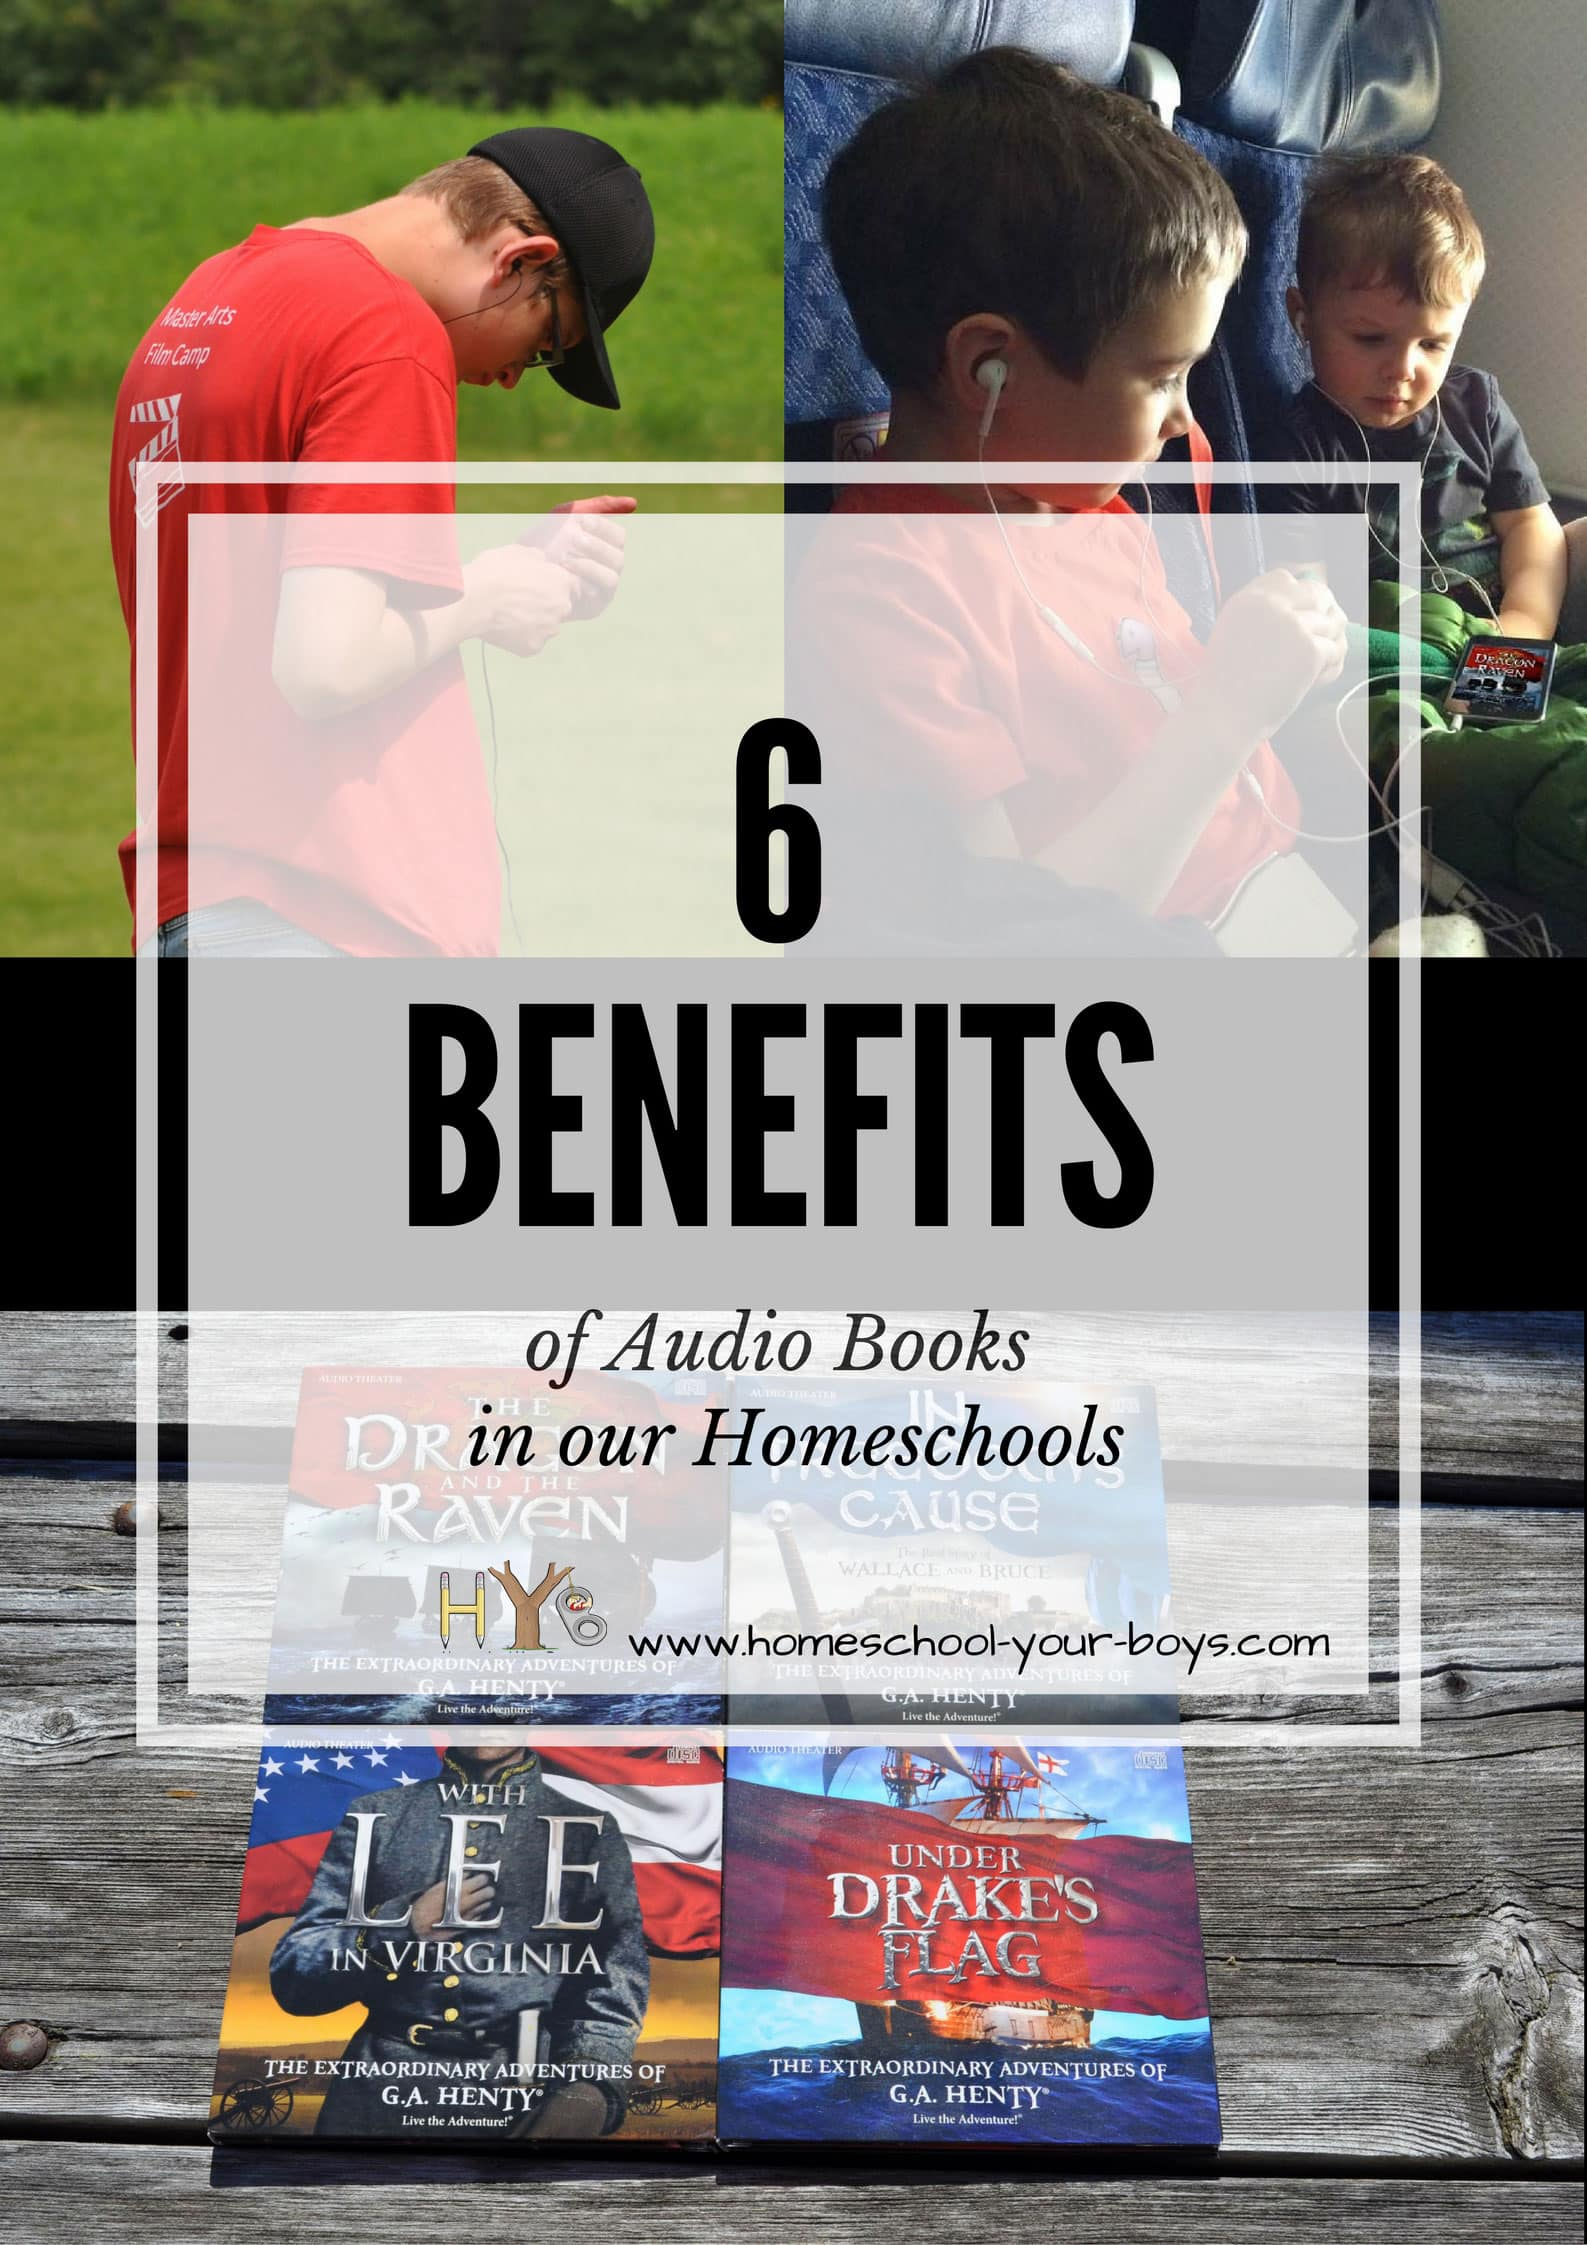 6 Benefits of Audio Books in our Homeschools